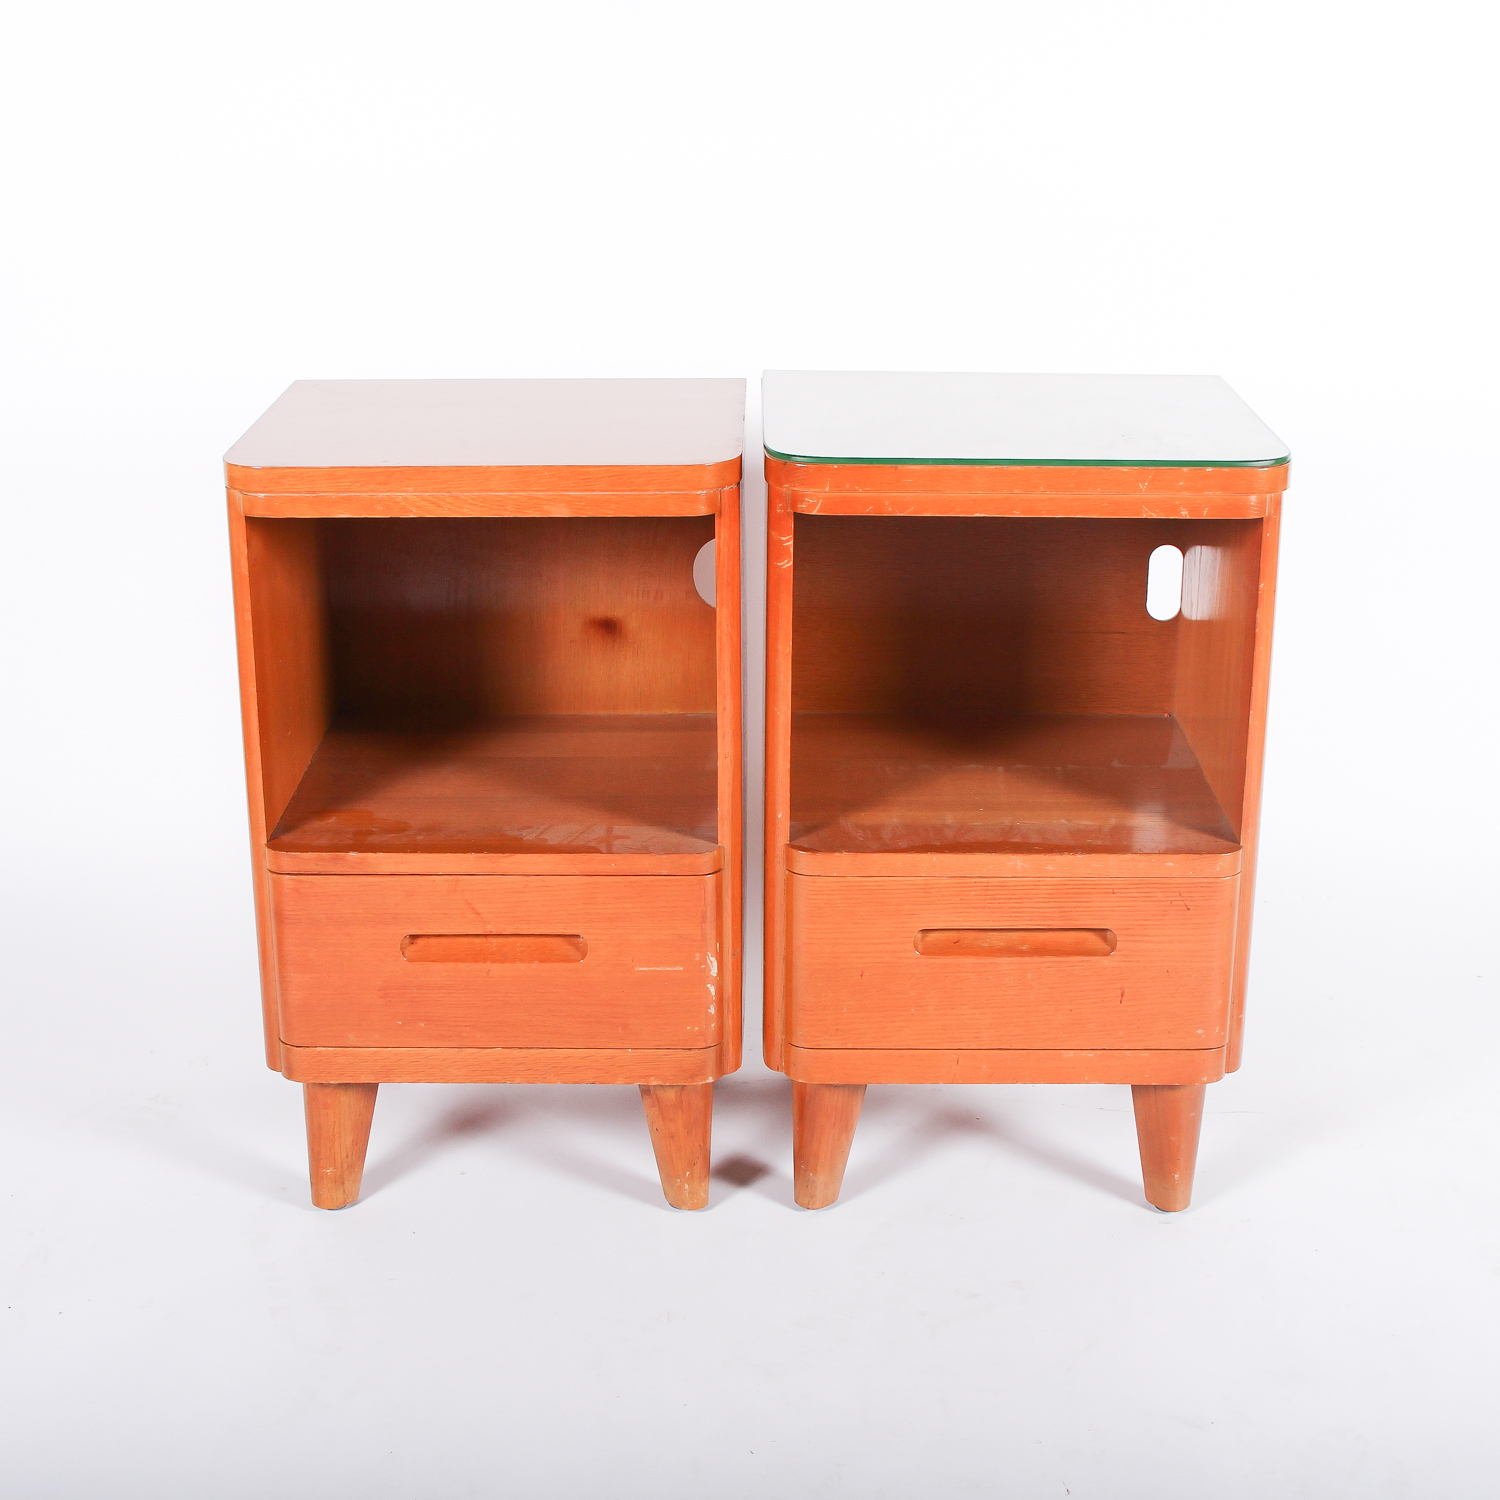 huntington chair corporation ikea wing chairs mid century modern style nightstand pair by ebth